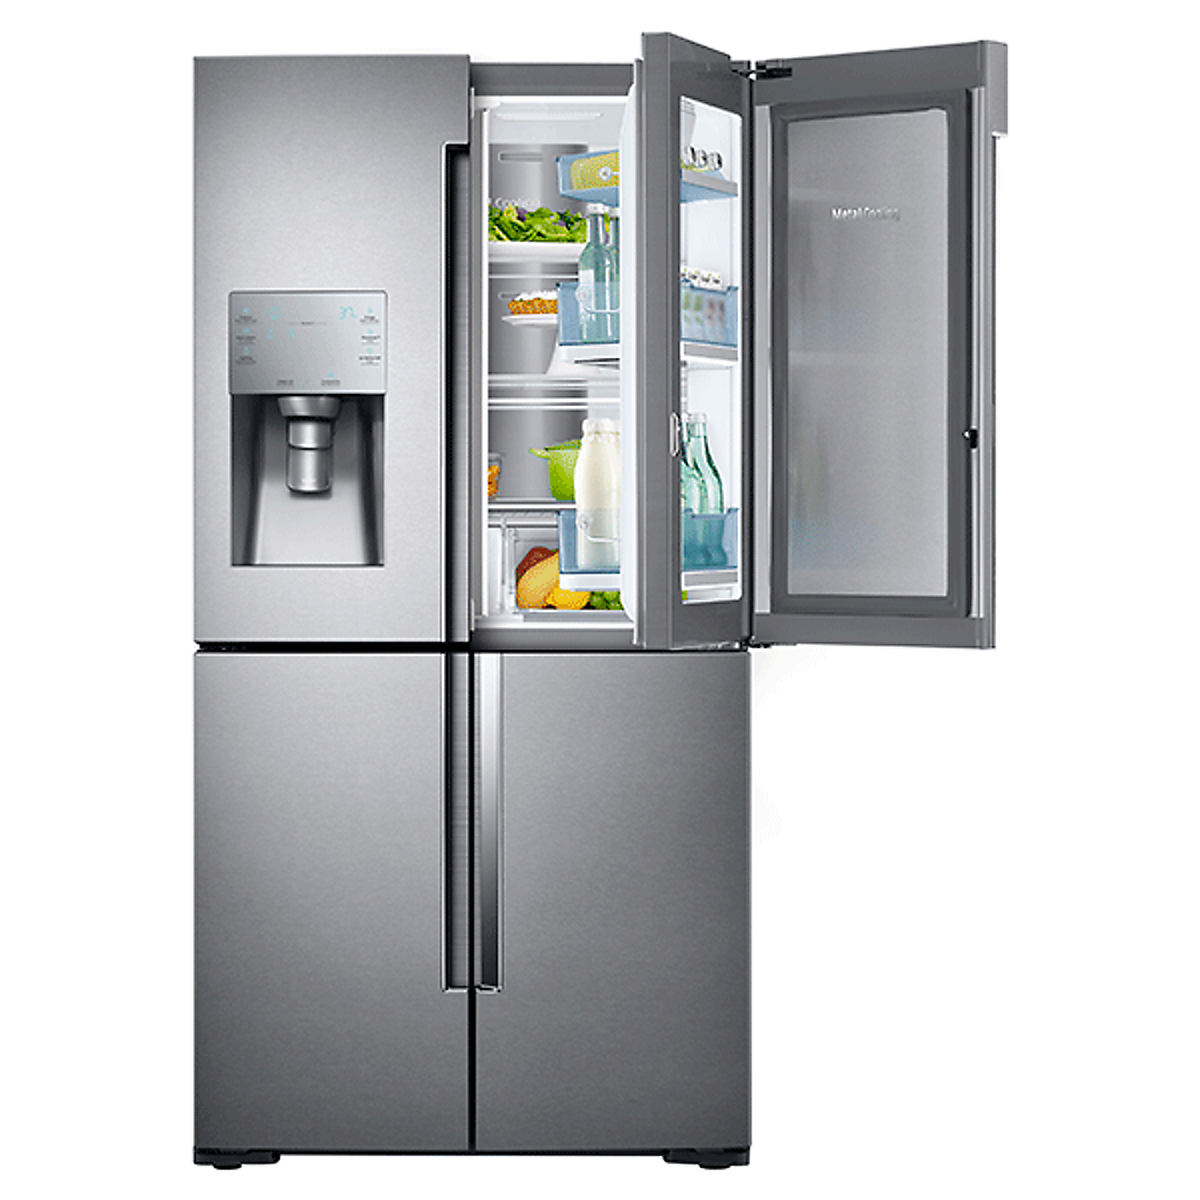 rf28k9380sr samsung 36 4 door french door refrigerator showcase door stainless steel. Black Bedroom Furniture Sets. Home Design Ideas